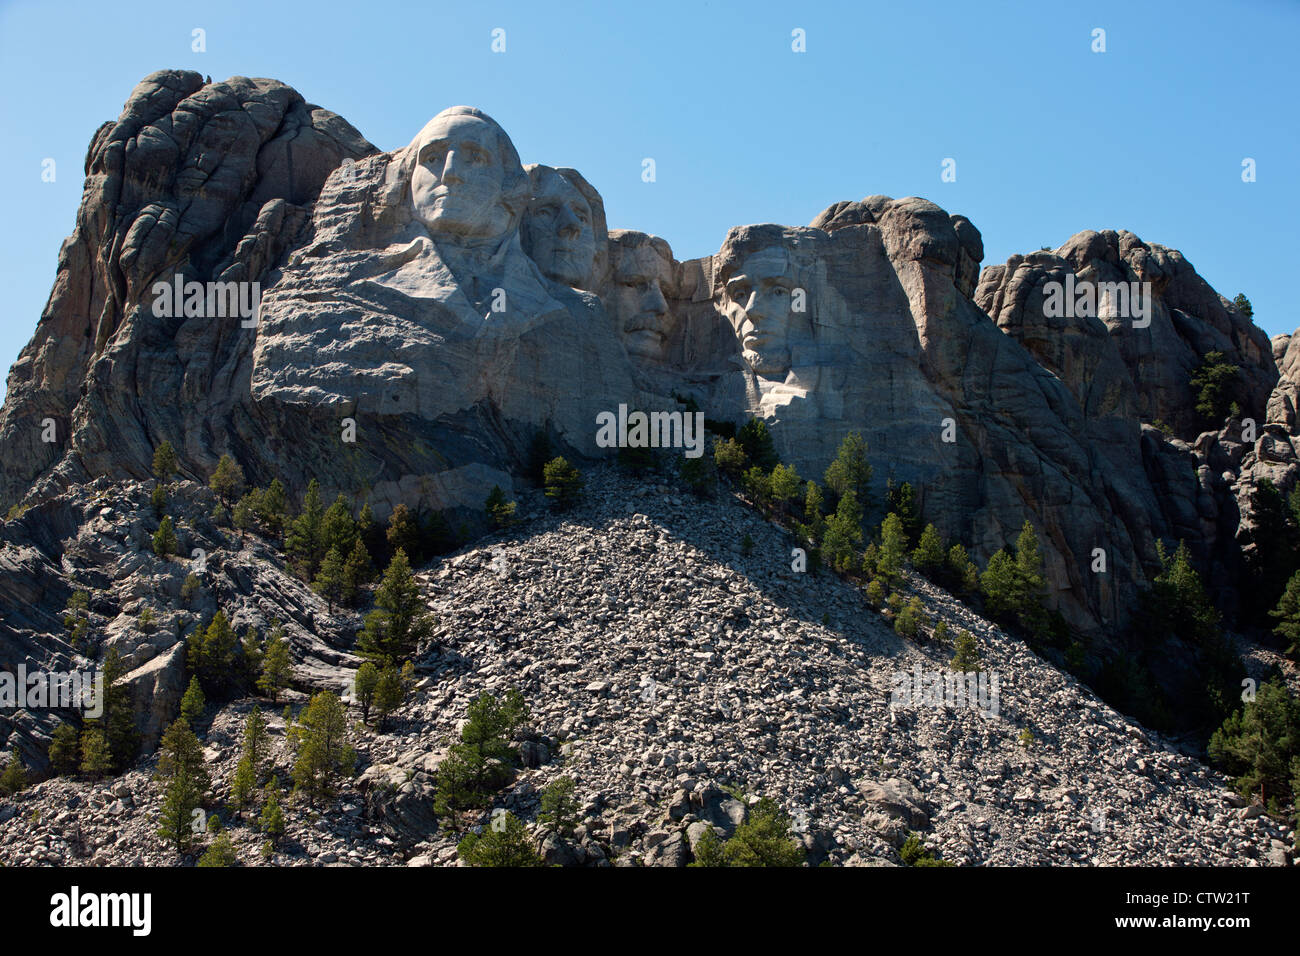 General view Mt. Rushmore with sculptures of former presidents George Washington, Thomas Jefferson, Theodore Roosevelt, Stock Photo